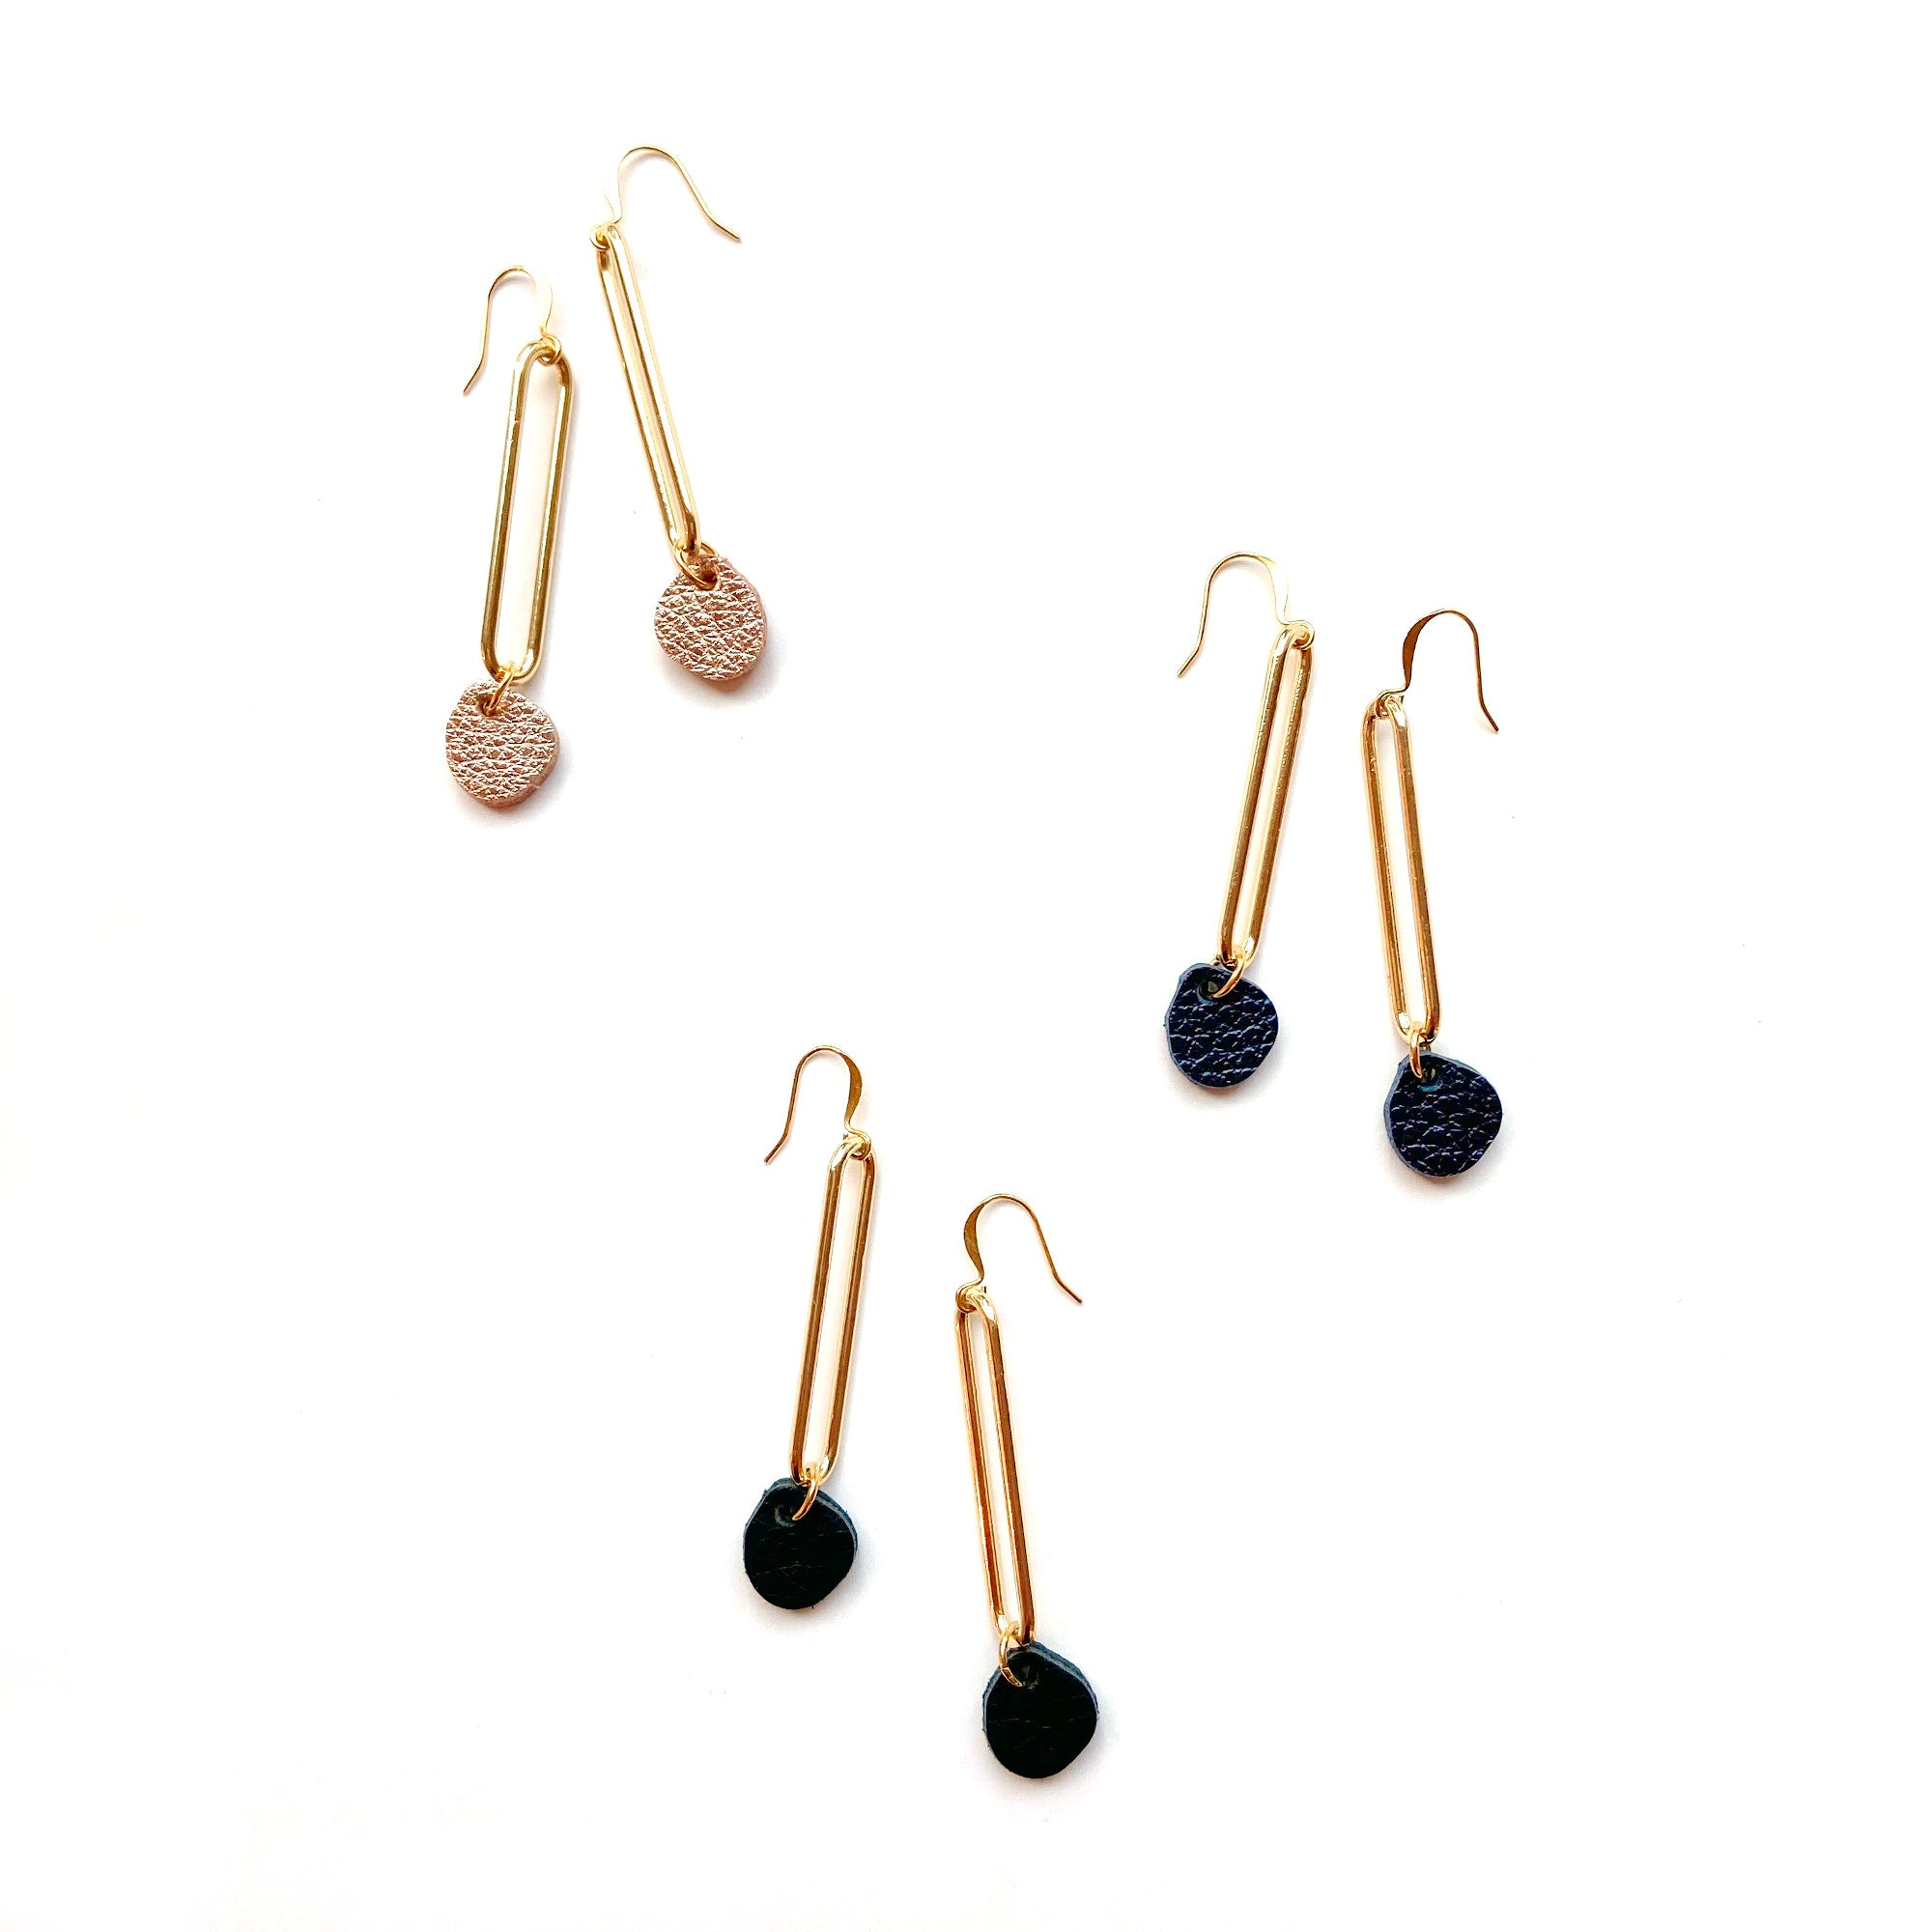 Sample Long gold earrings with leather drop